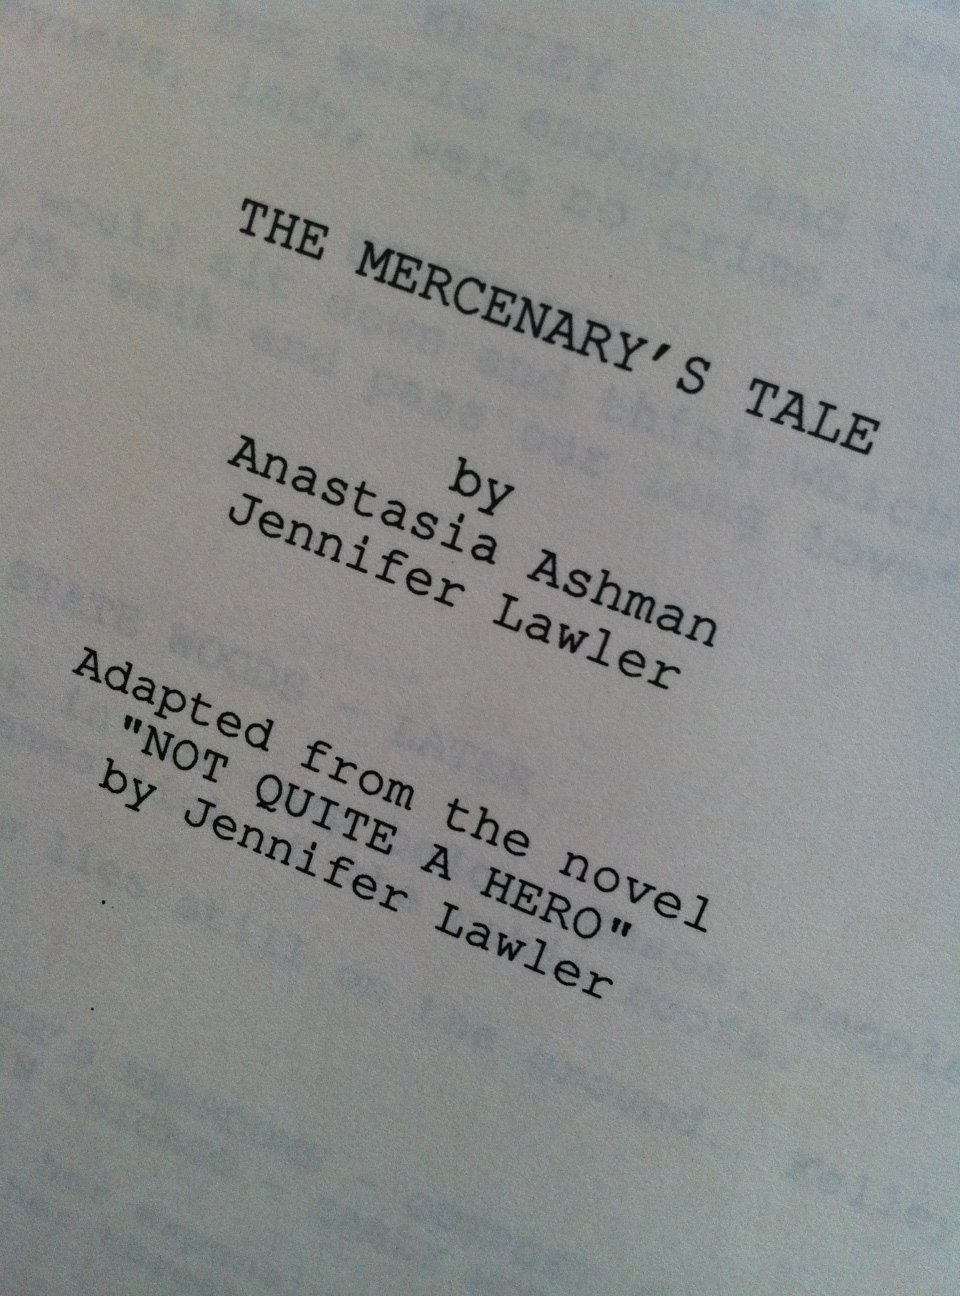 The Mercenary's Tale, screen adaptation of the novel Not Quite a Hero. We spent two years (1990-2) adapting the story to the screen format.